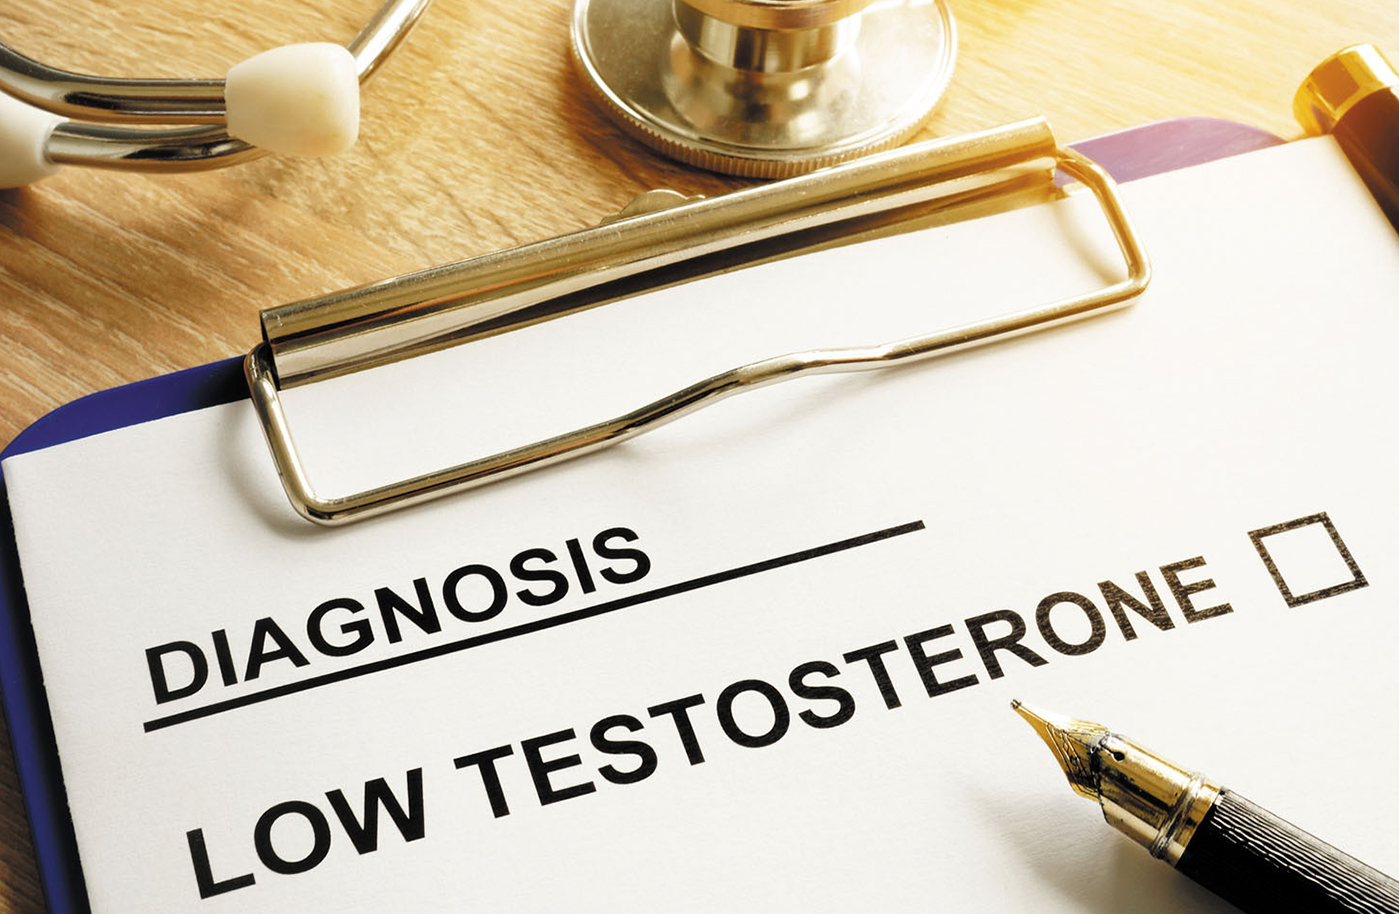 foods that boost testosterone and lower estrogen